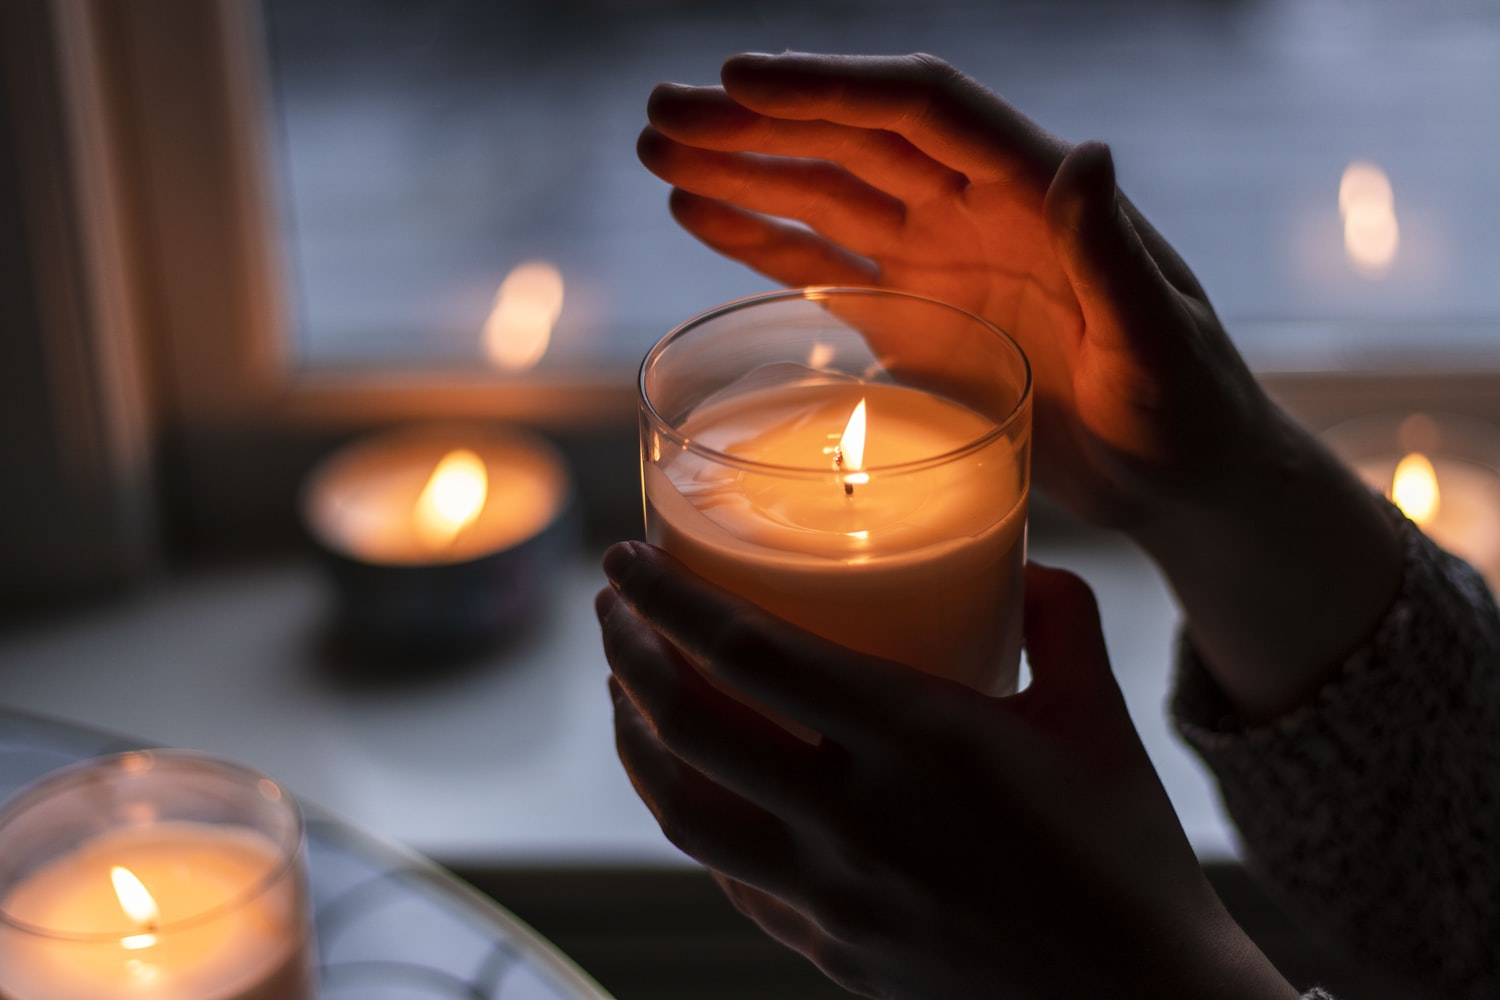 a person holds a candle up to the camera in a dark room with their hand over the flame